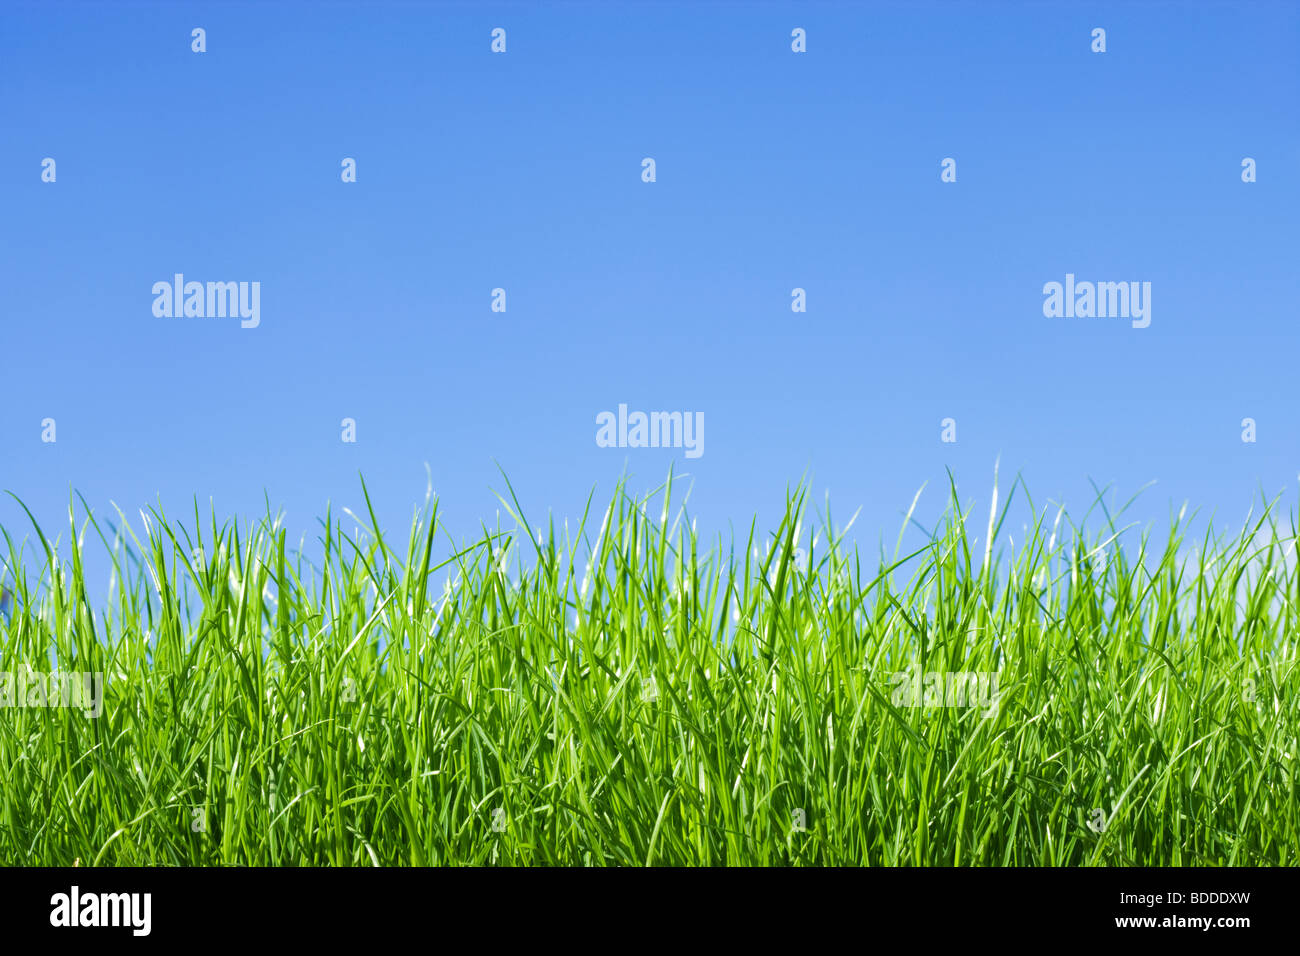 Grass, low angle against blue sky - Stock Image